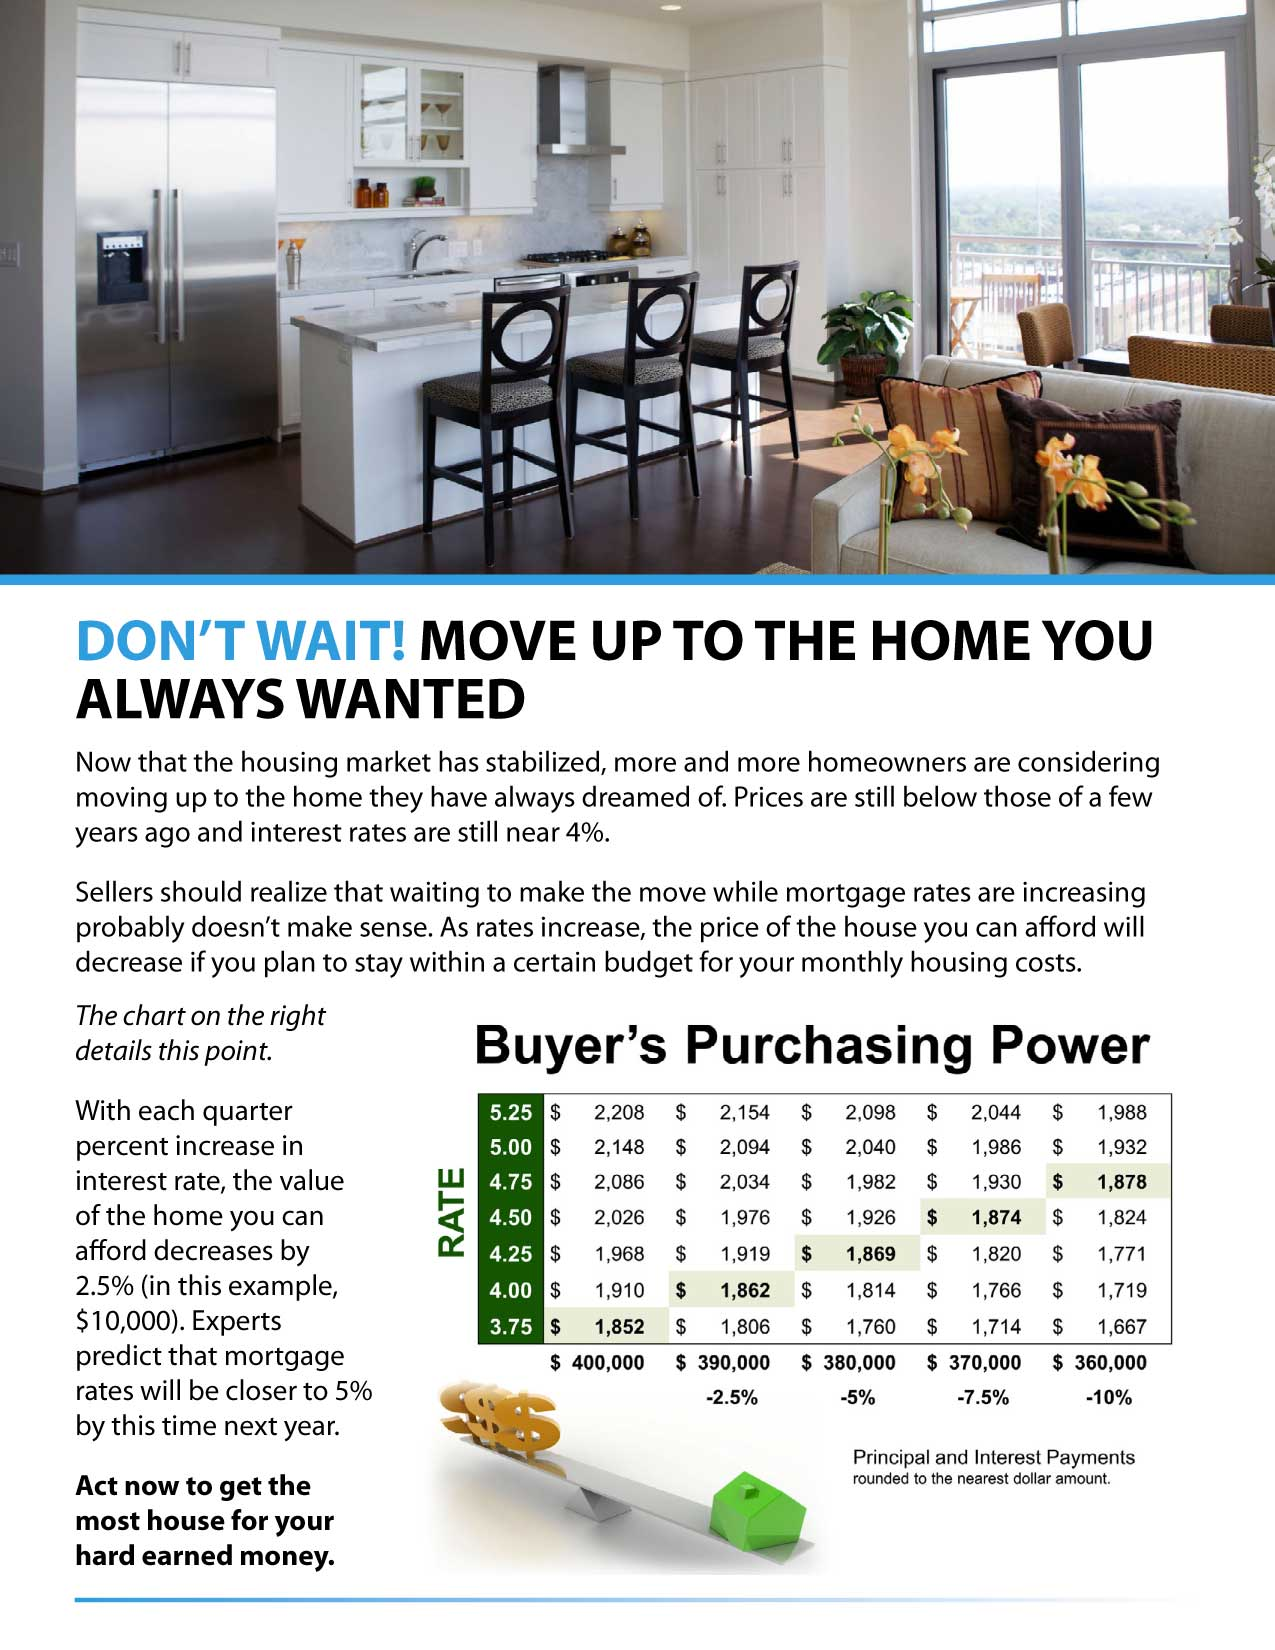 DON'T WAIT! MOVE UP TO THE HOME YOU ALWAYS WANTED